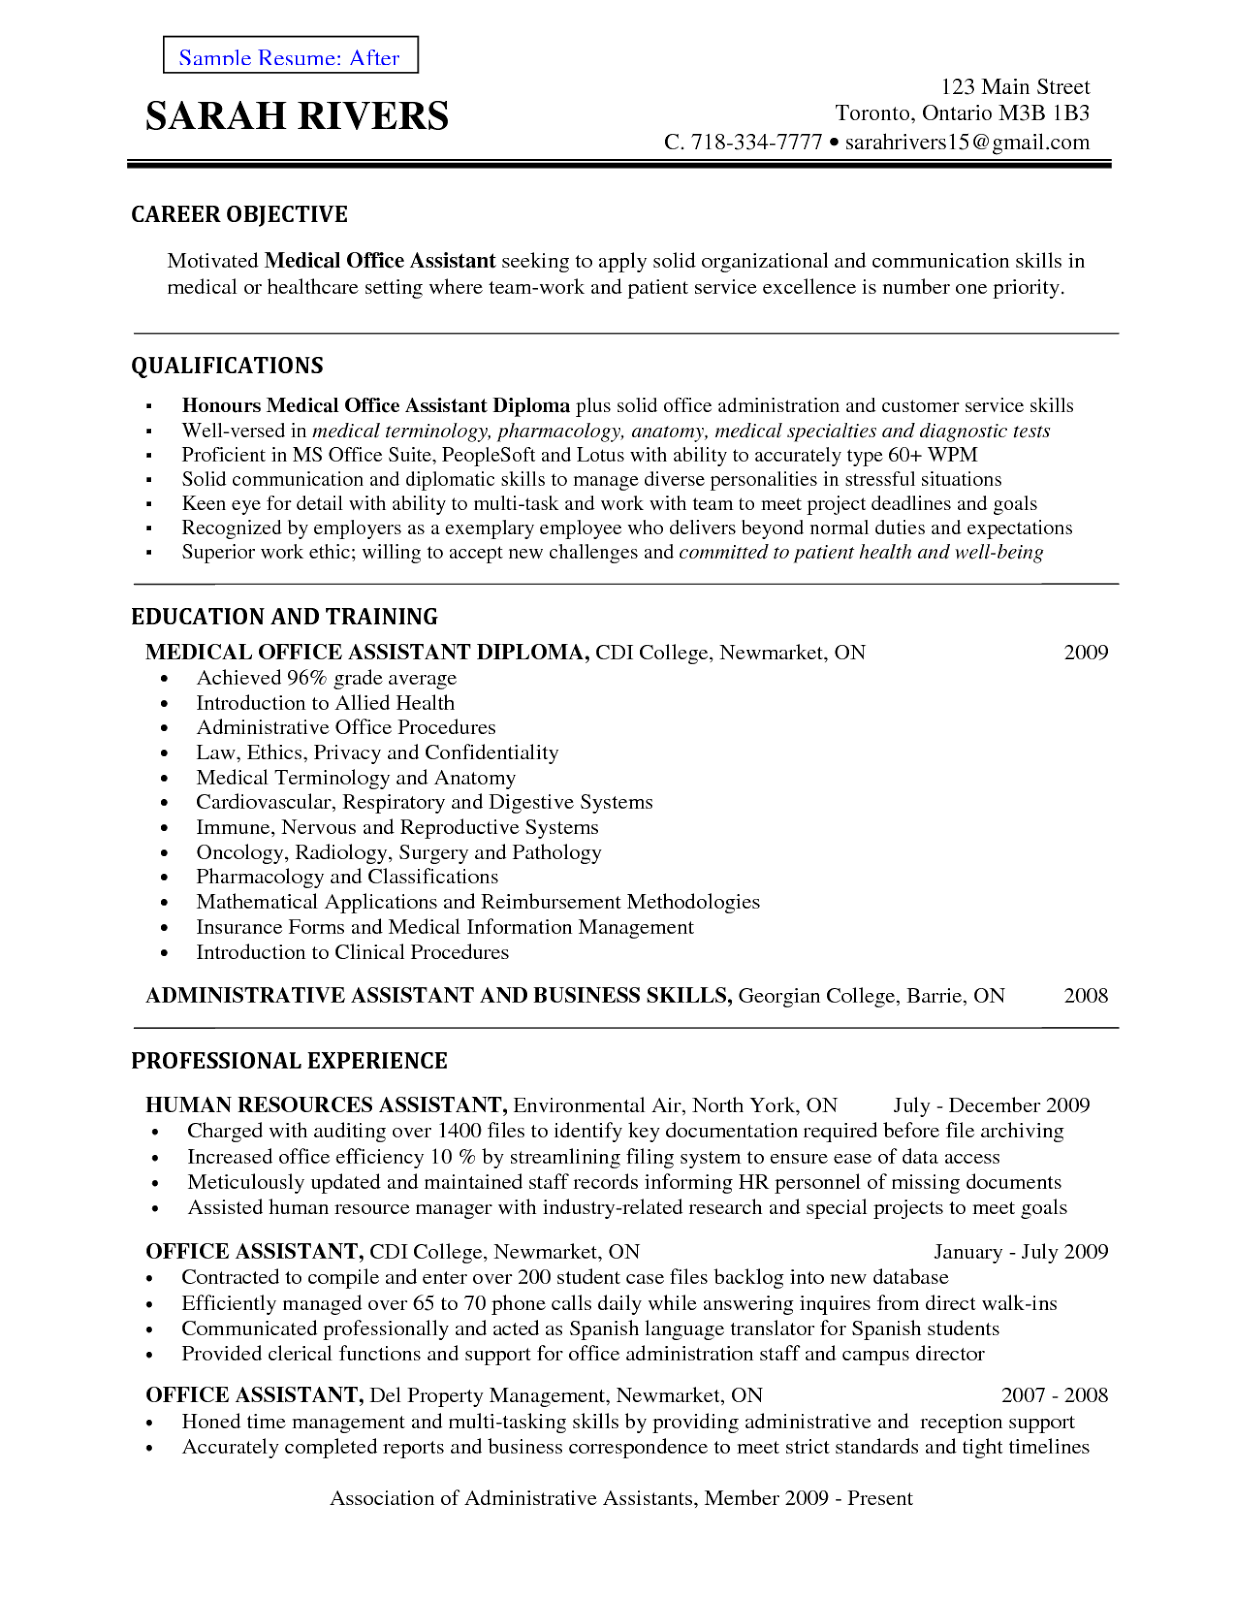 Resume Samples For Tim Hortons Tomburorddiner